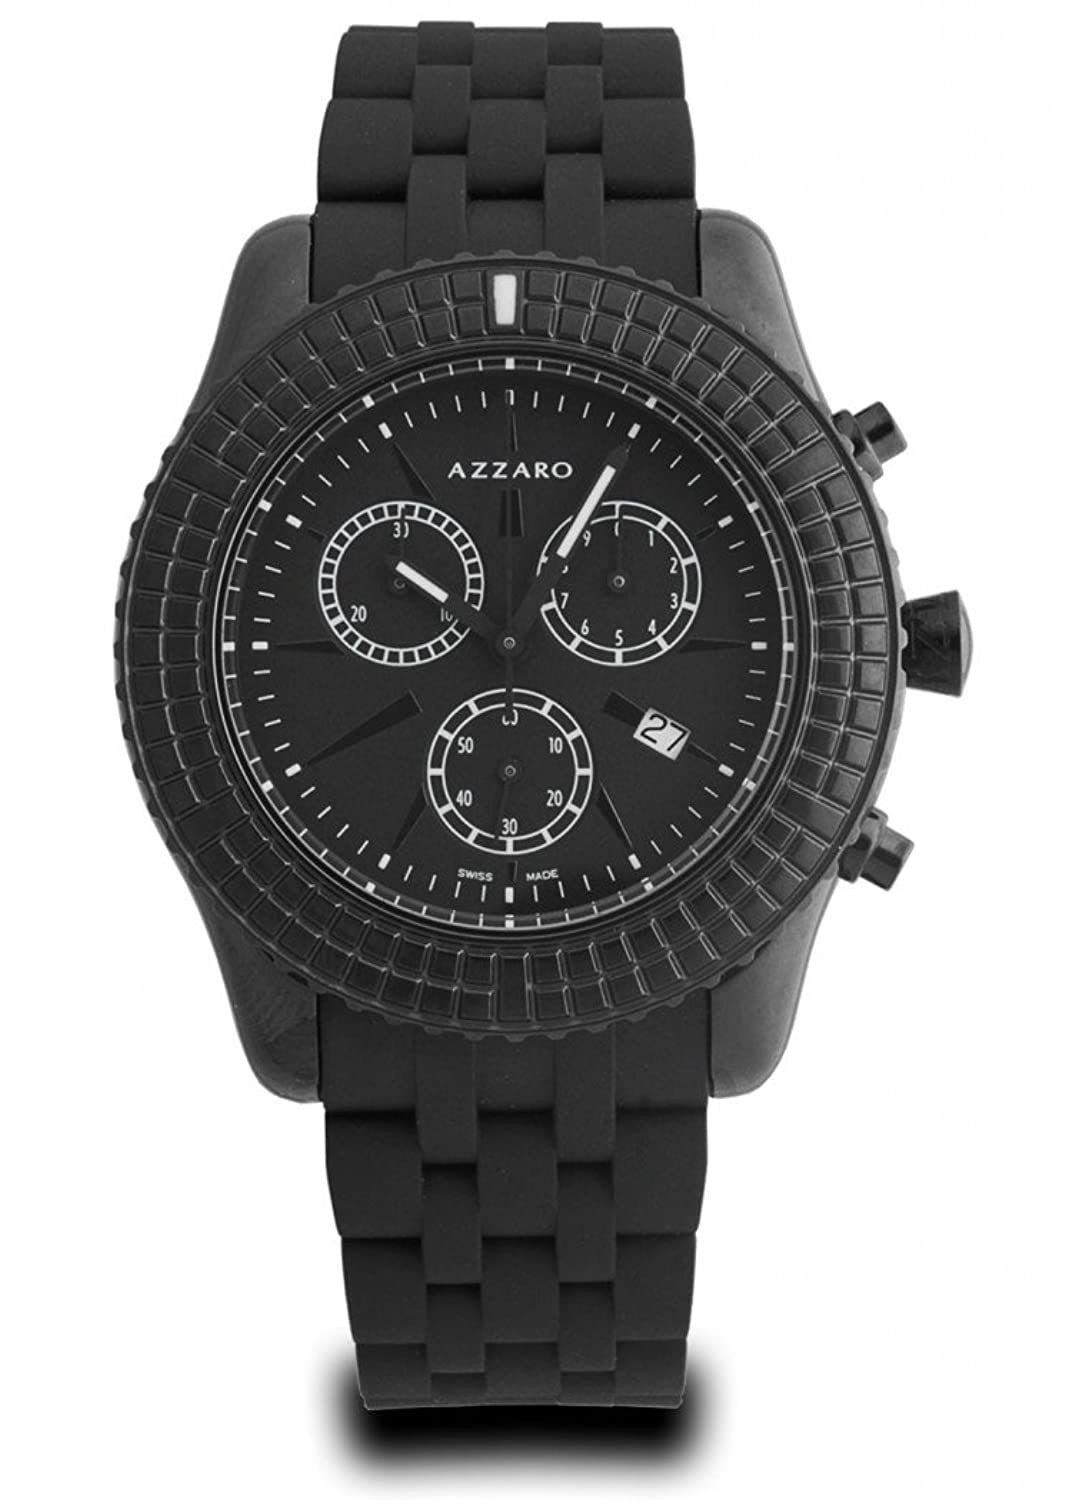 Azzaro Coastline Chronograph Swiss Made 41mm Unisex